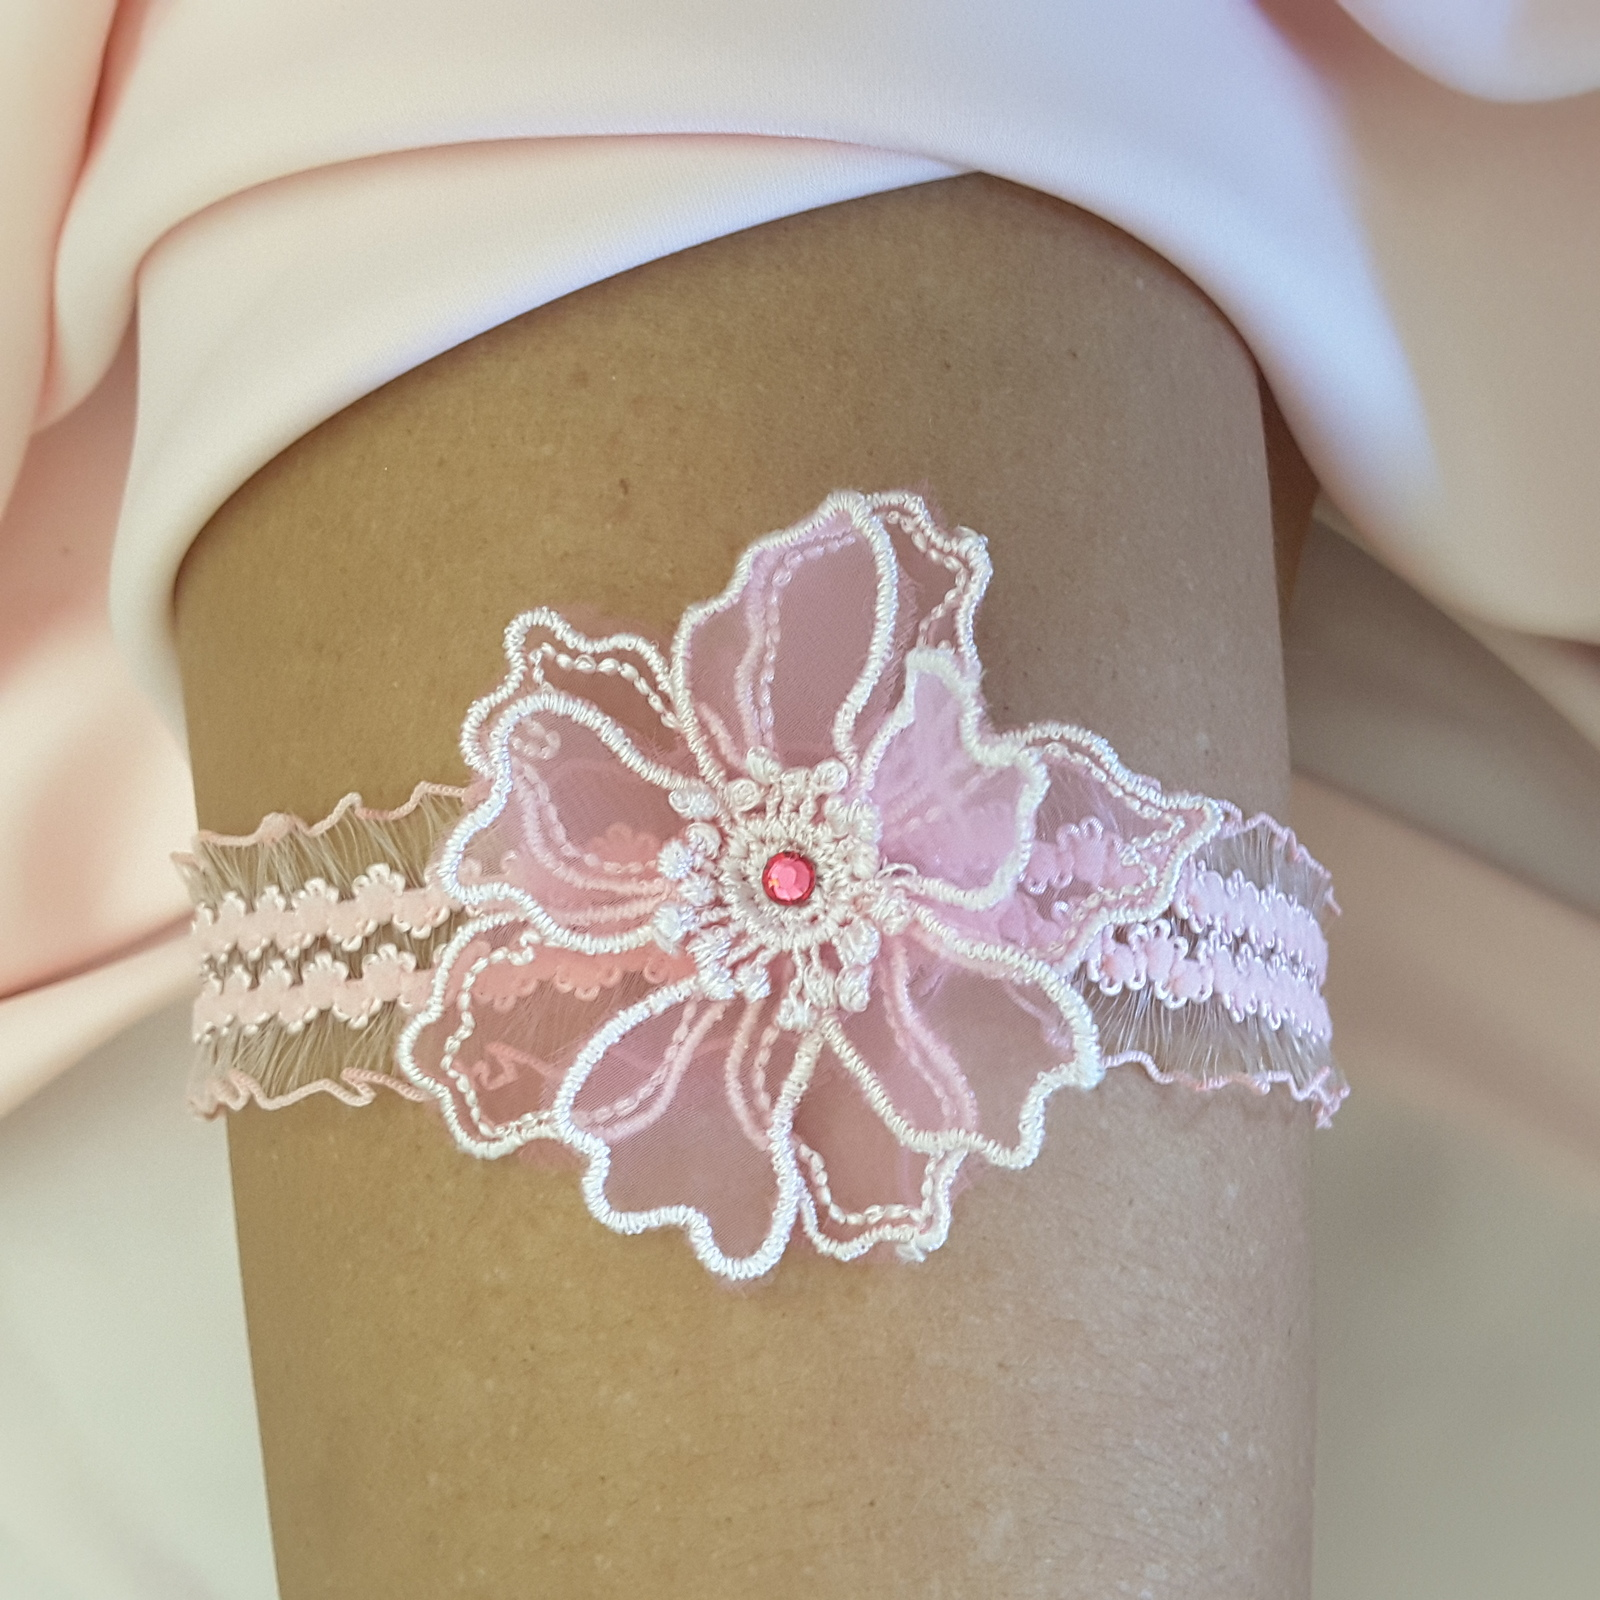 Wedding Leg Garter: White Pink Purple Lace Wedding Bride Garter Leg Bridal